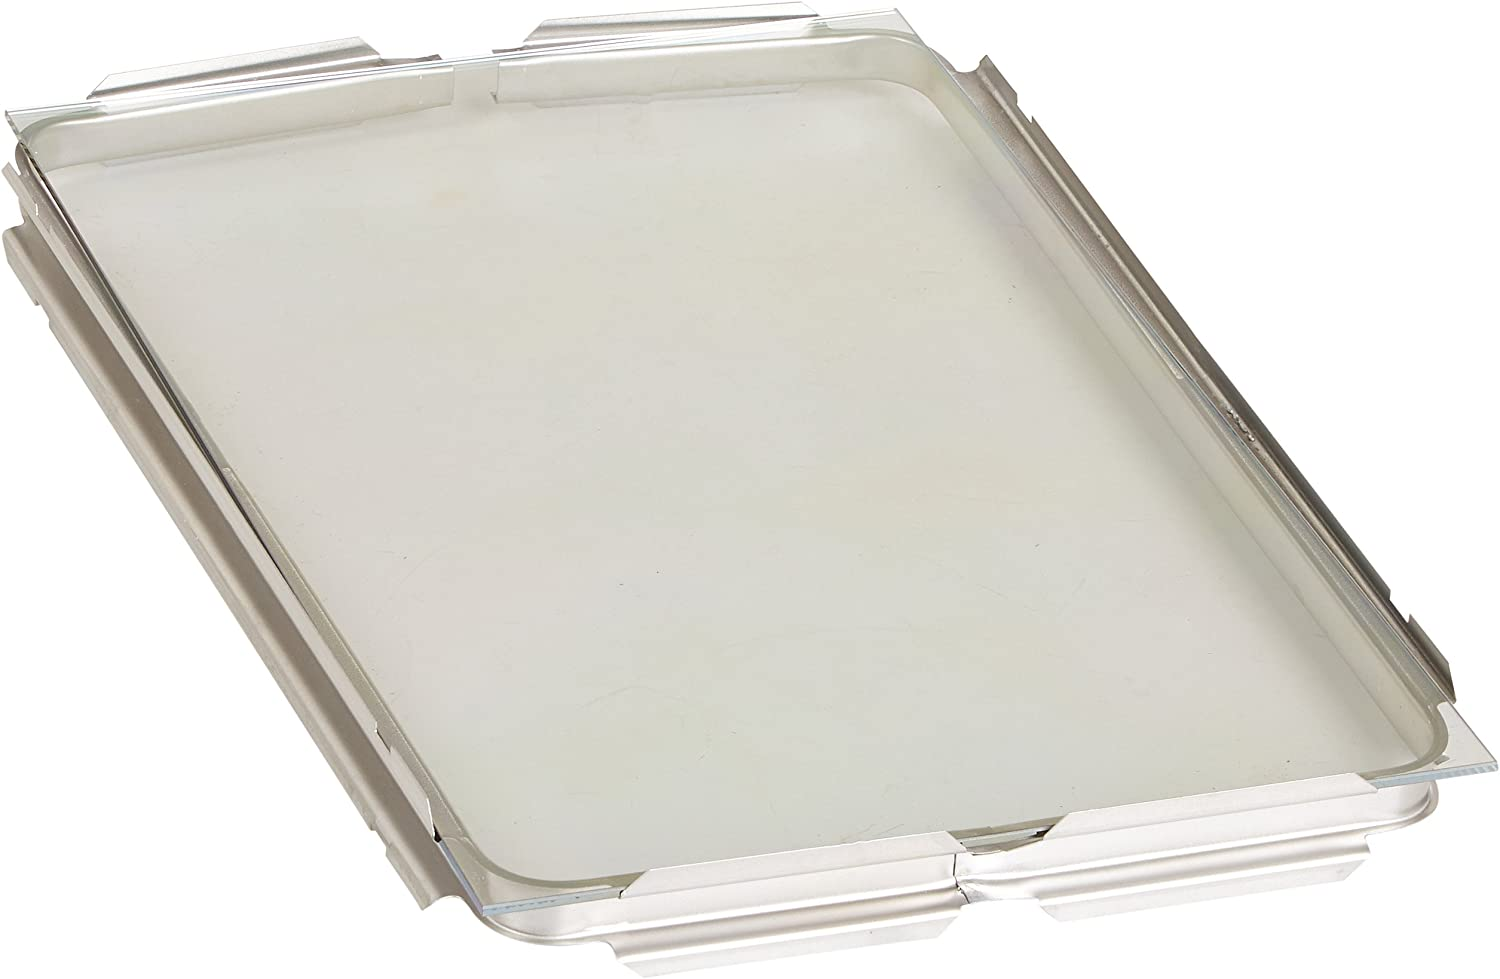 General Electric WB56K20 Range Stove Oven Window Pack